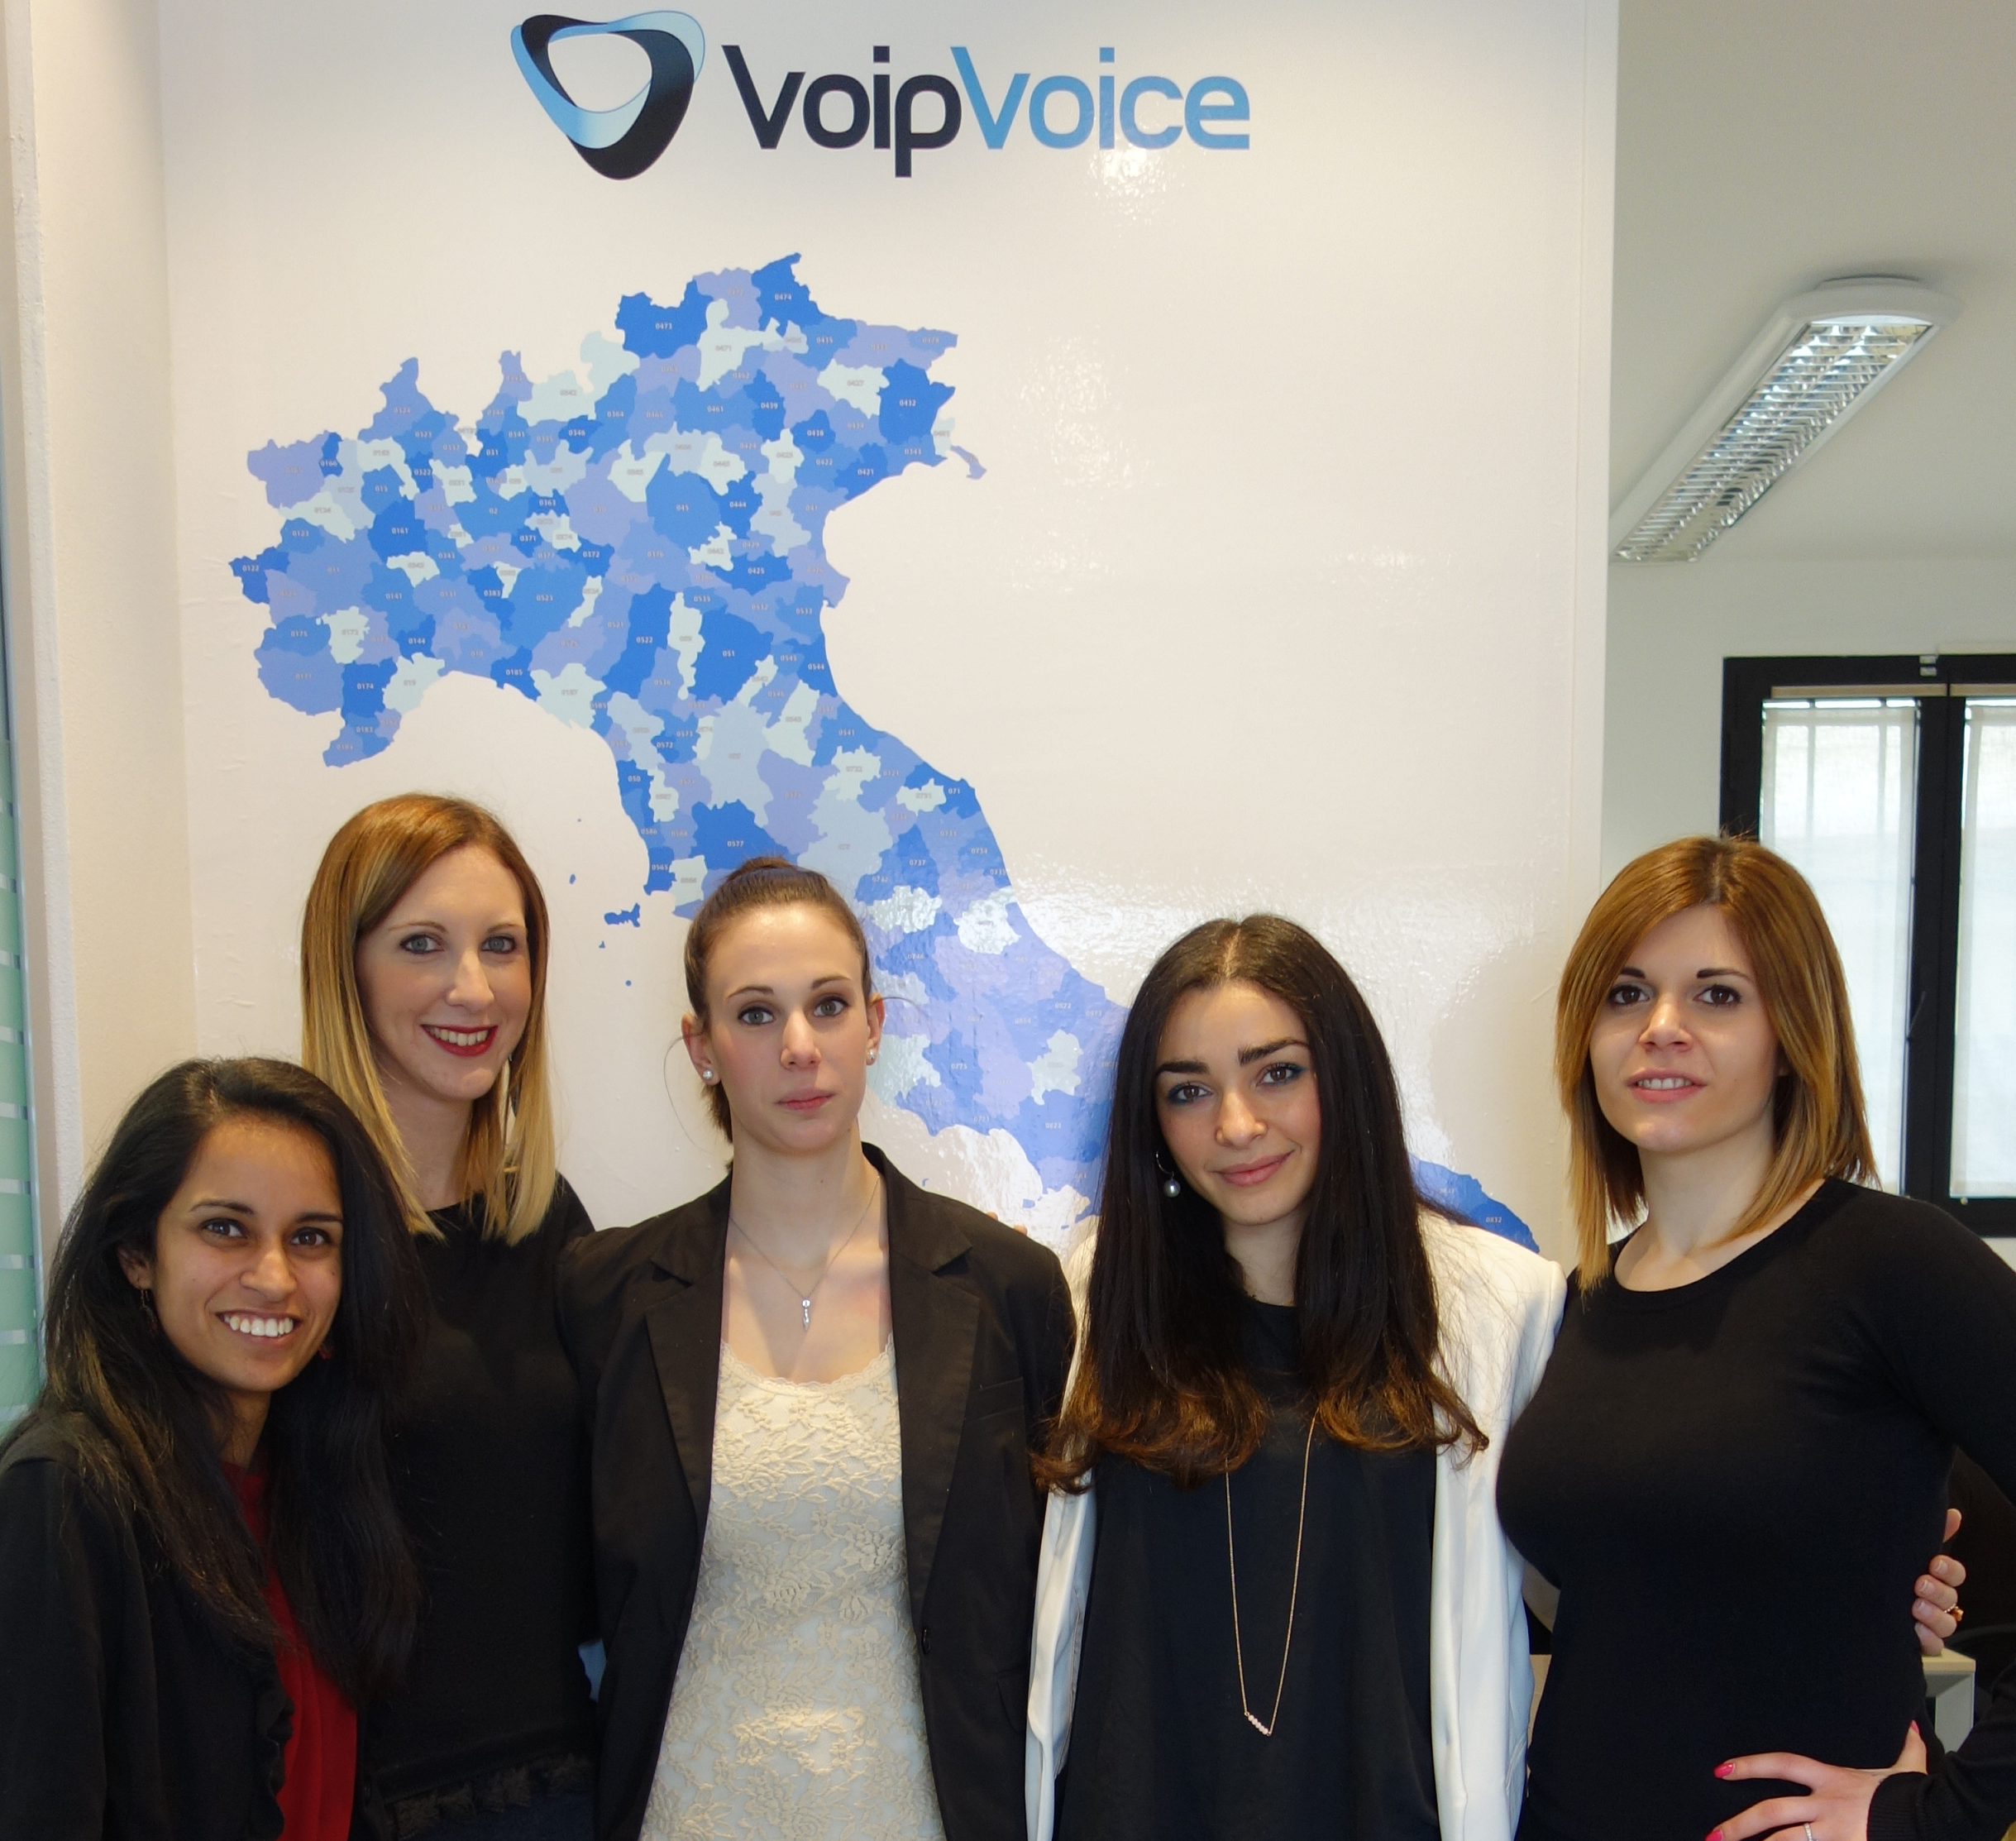 donne voipvoice post 8 marzo